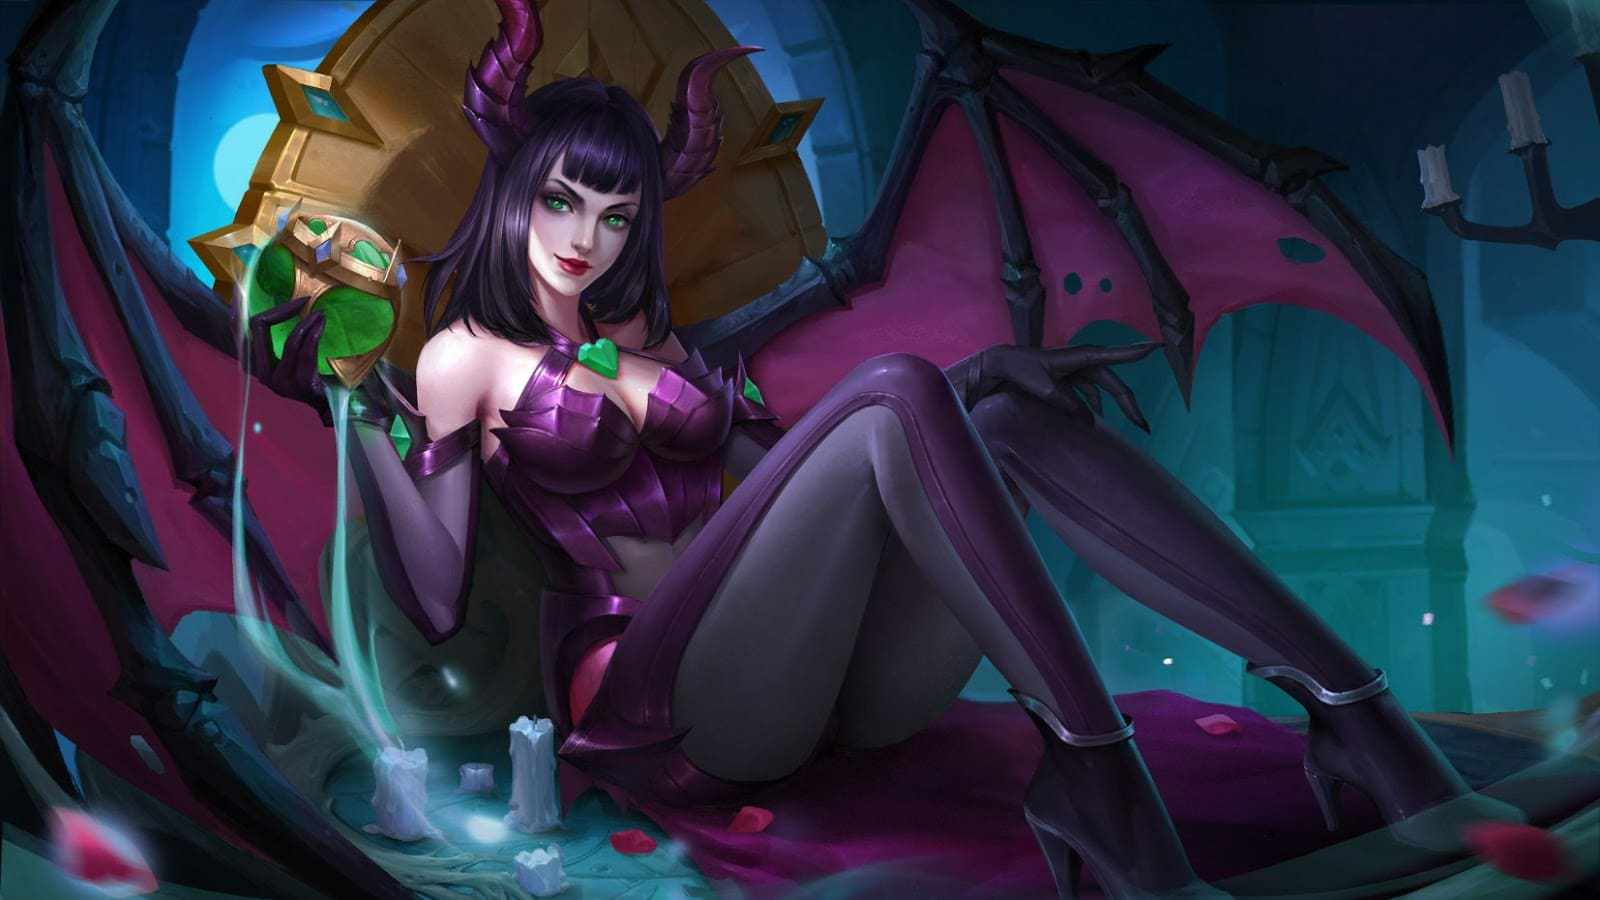 Wallpaper Alice Spirit Woman Mobile Legends HD for PC - Hobigame.id